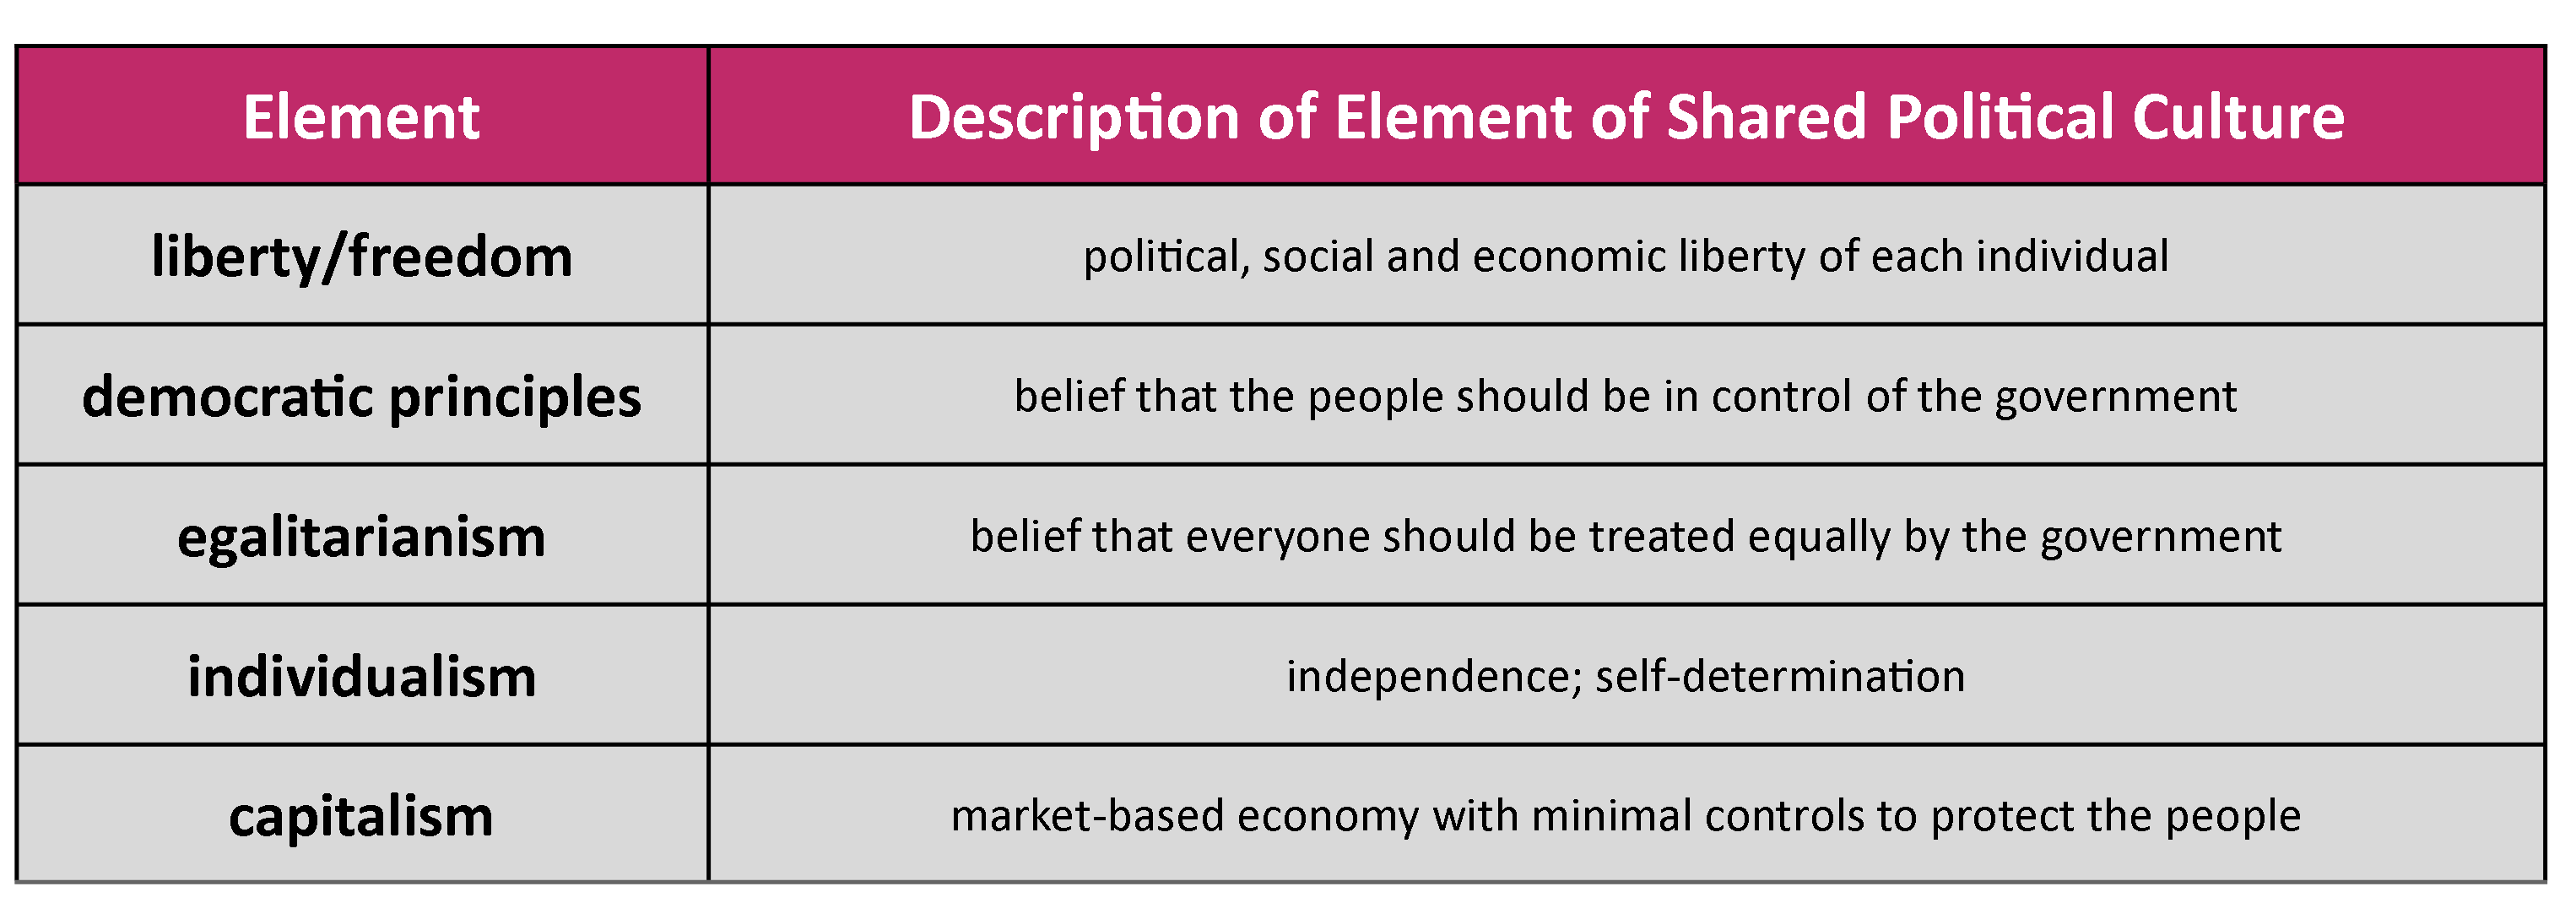 Chart showing elements of shared political culture including liberty, democratic principles, egalitarianism, individualism, and capitalism.